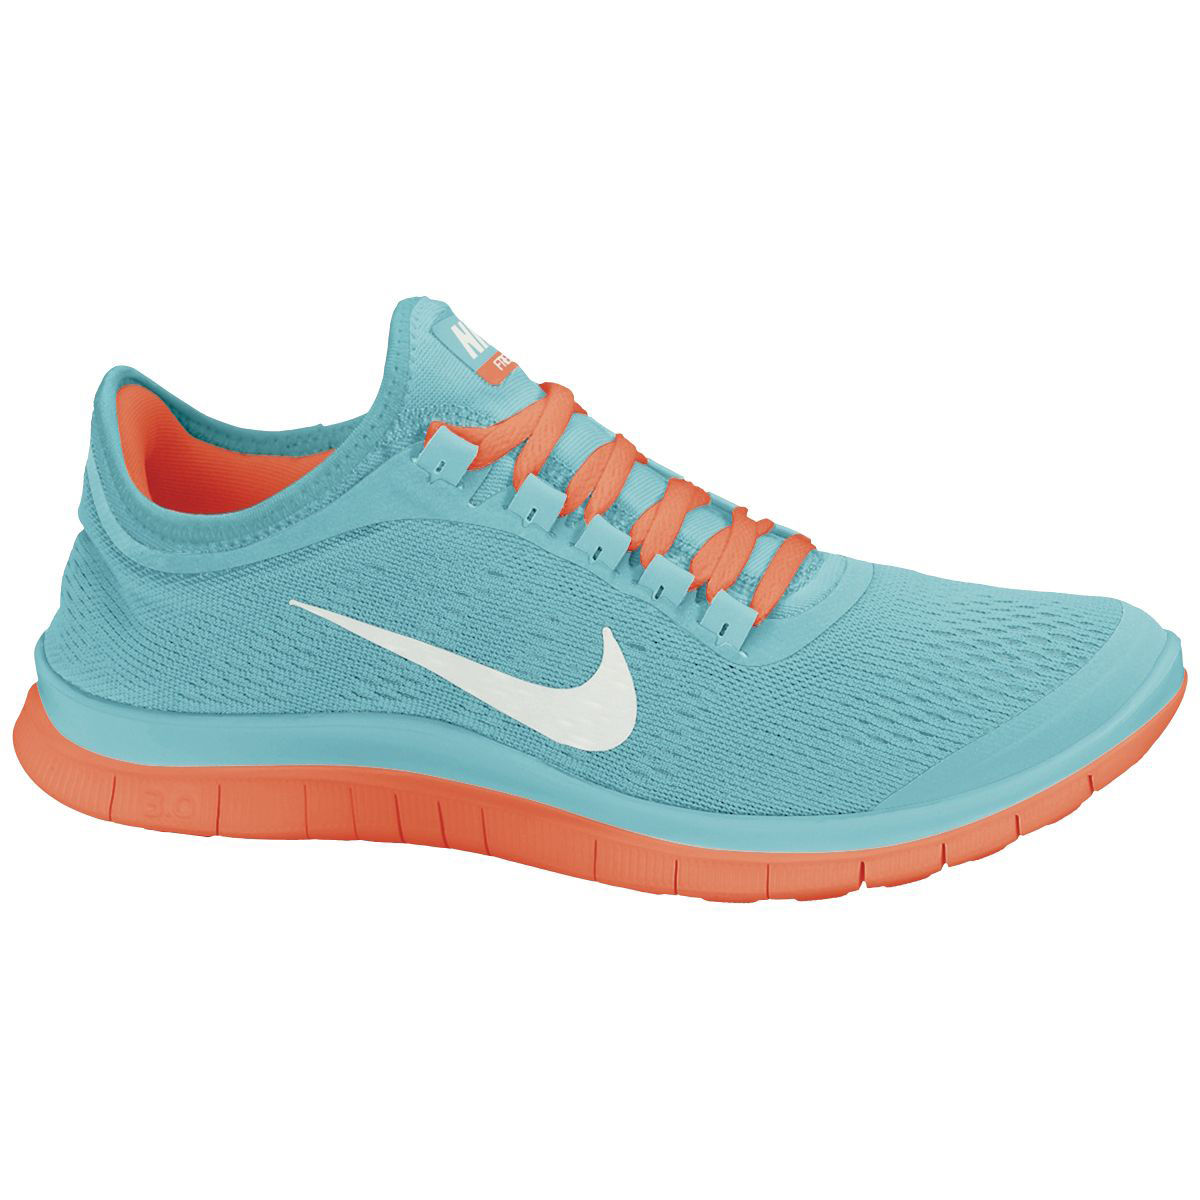 Wiggle Nike Women S Free 3 0 V5 Shoes Sp14 Training